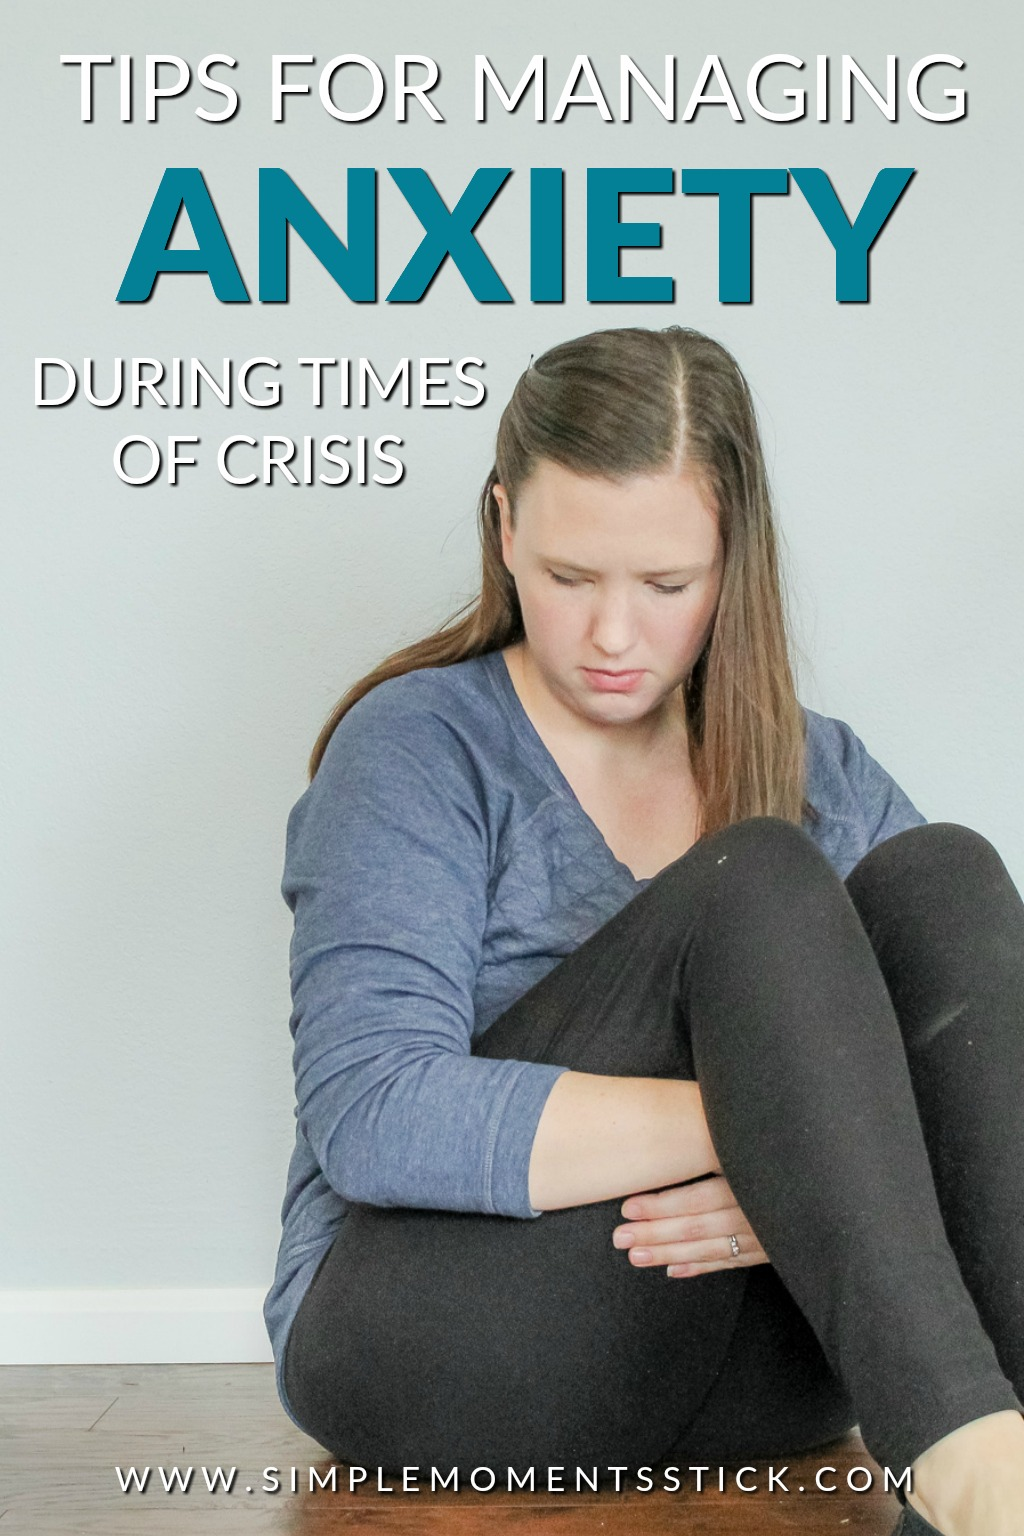 Tips for managing anxiety. Anxiety in crisis. How to manage anxiety